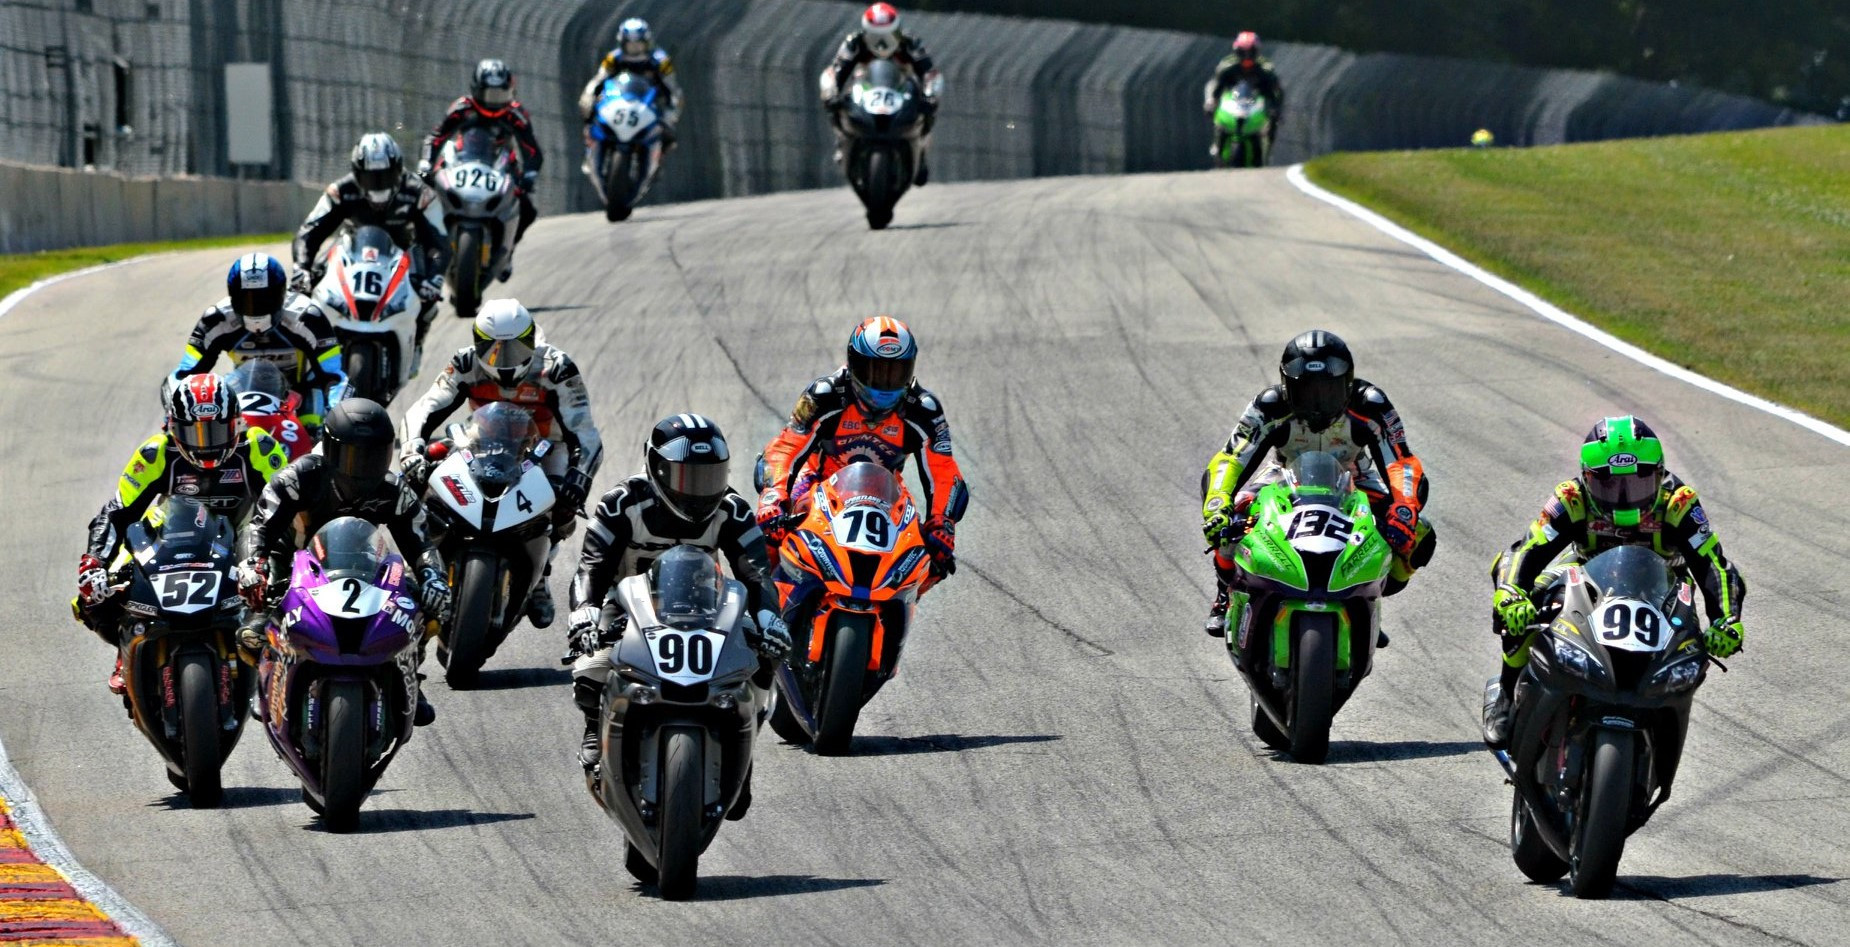 ASRA/CCS racers entering Turn Five at Road America. Photo by Angie Stanislawski/H&E Services, LLC courtesy ASRA/CCS.